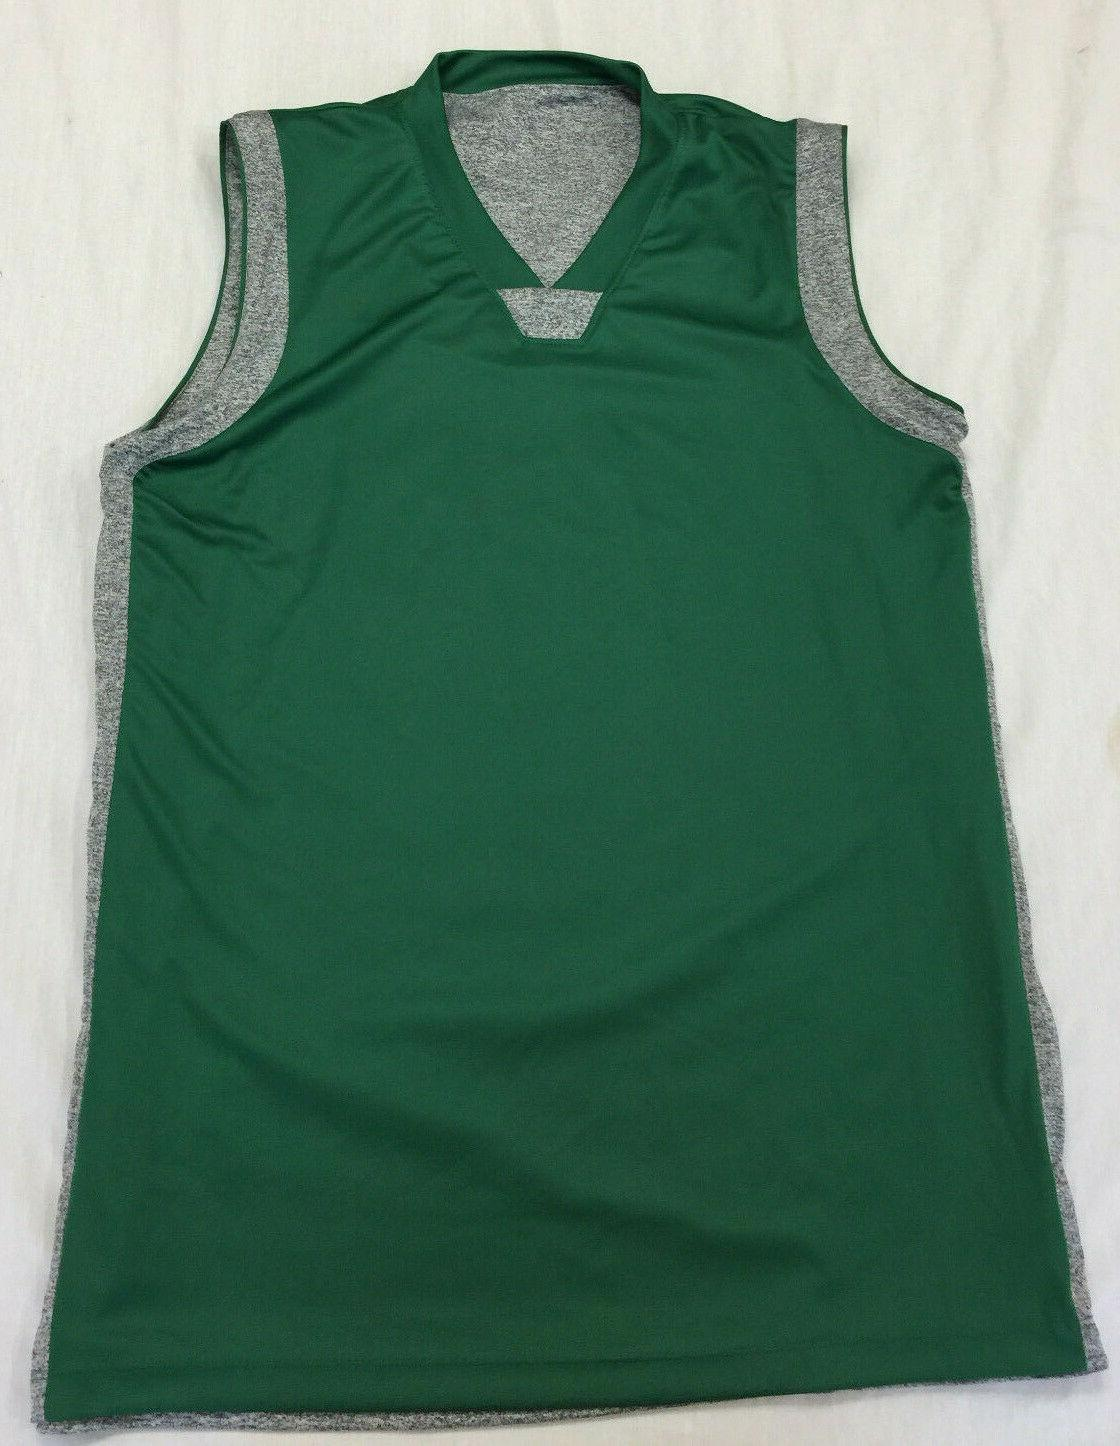 NWOT MENS SLEEVELESS REVERSIBLE BASKETBALL SHIRT SIZE